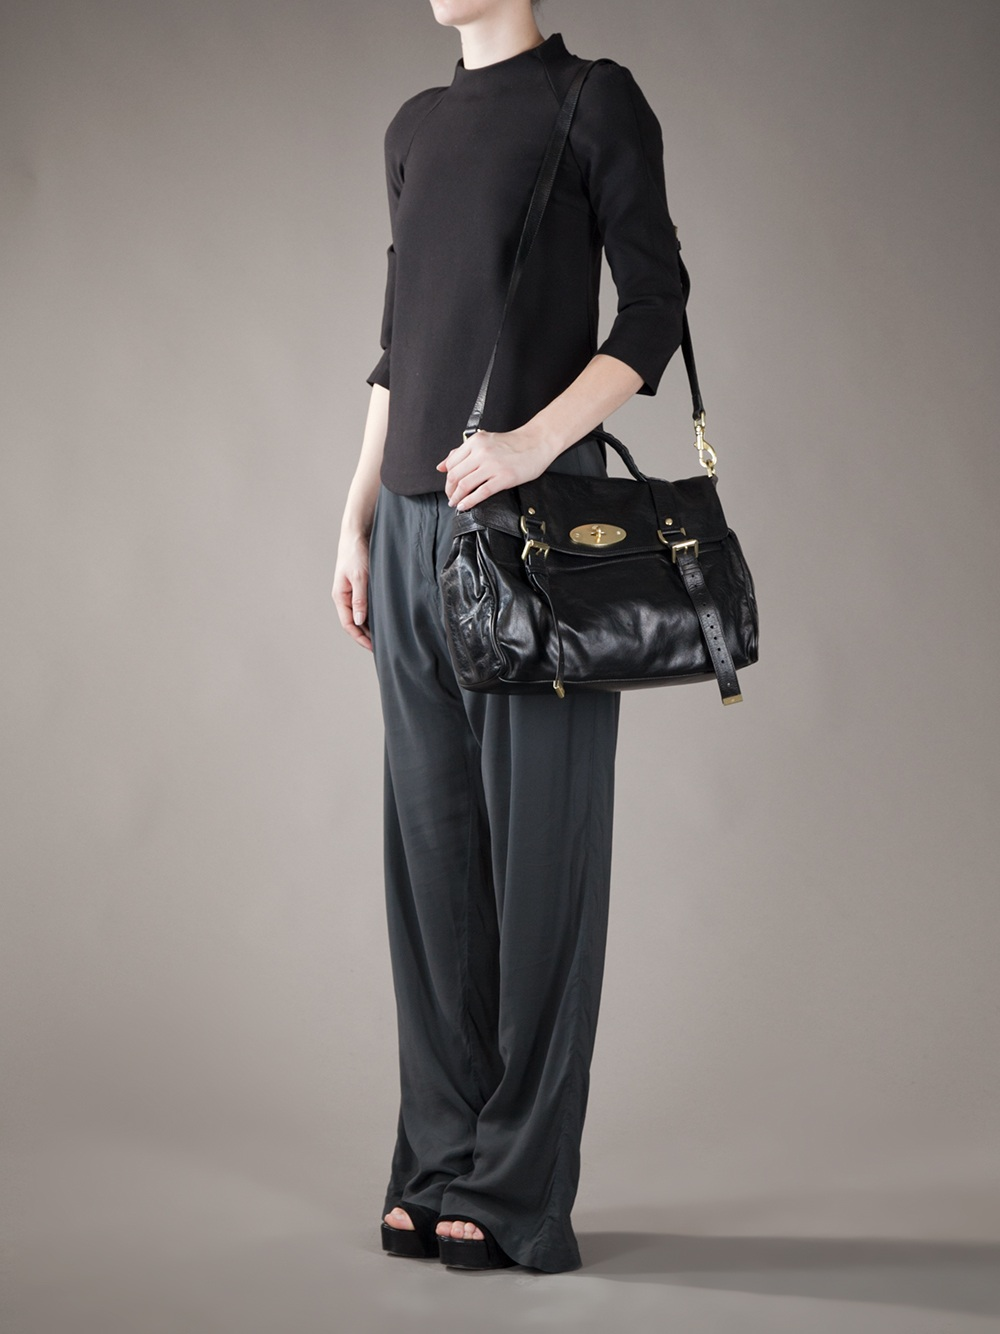 ... wholesale mulberry oversize alexa bag in black lyst 3963d 16d53 ... cb7f3cba3fdb3